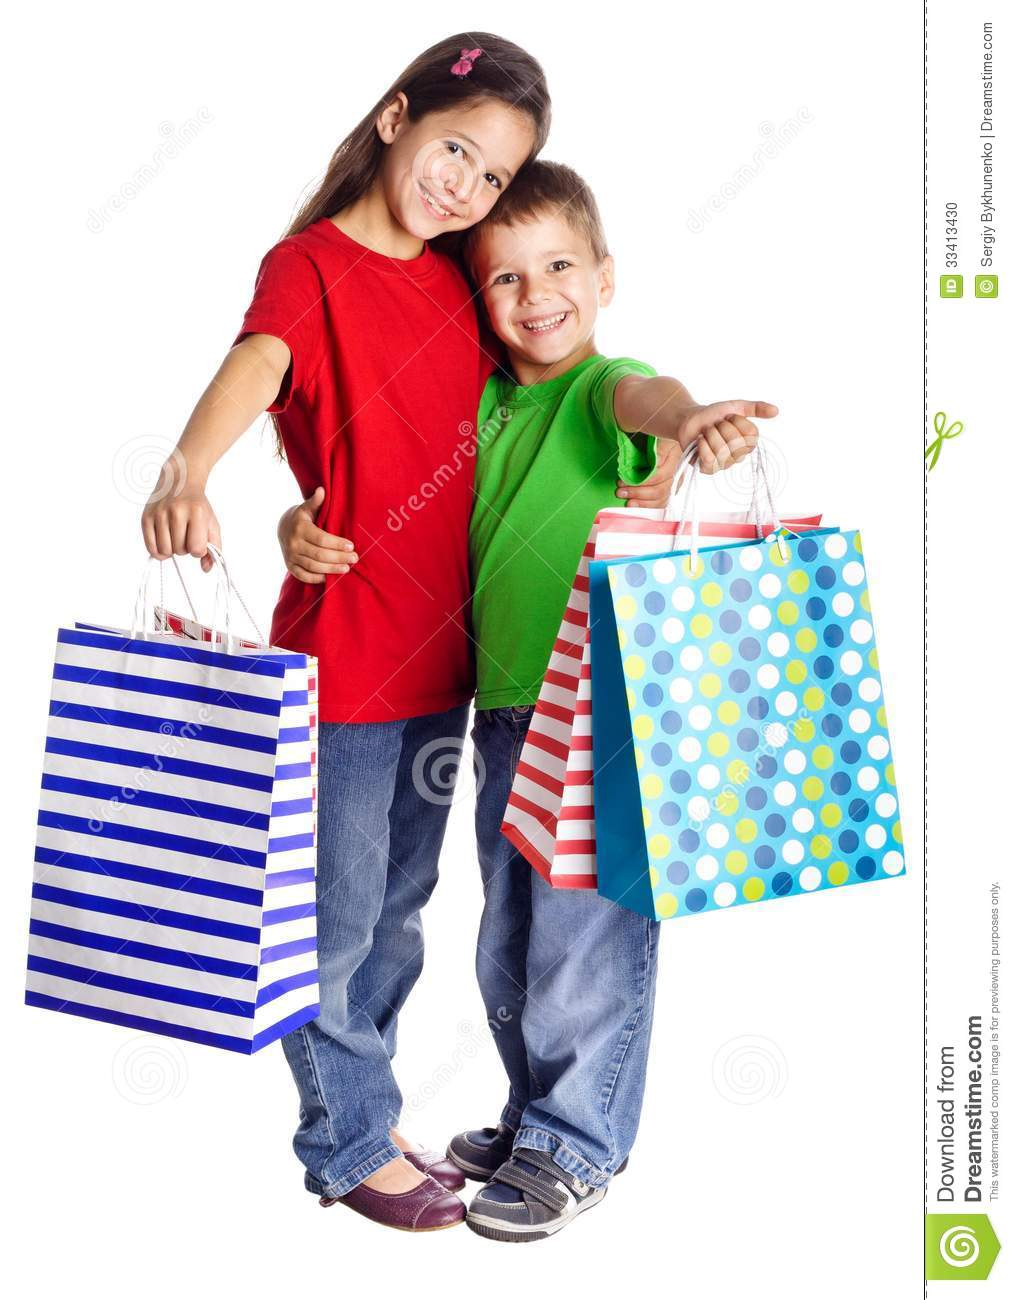 Happy Kids With Shopping Bags Stock Photo - Image: 33413430